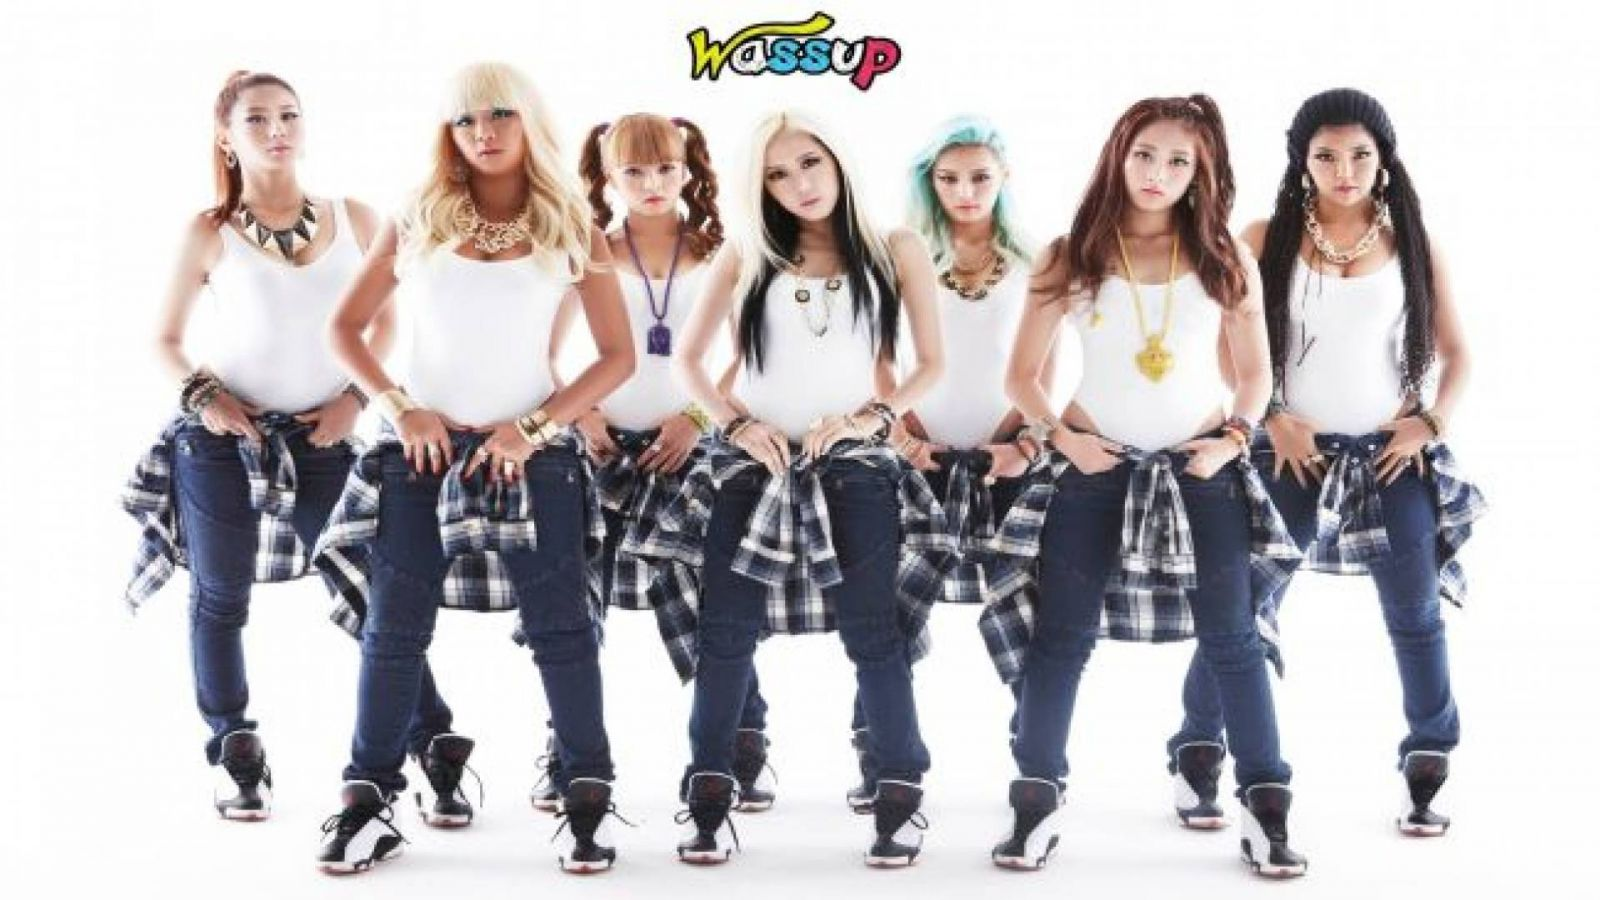 Wa$$up © Wassup Oficial Facebook Page